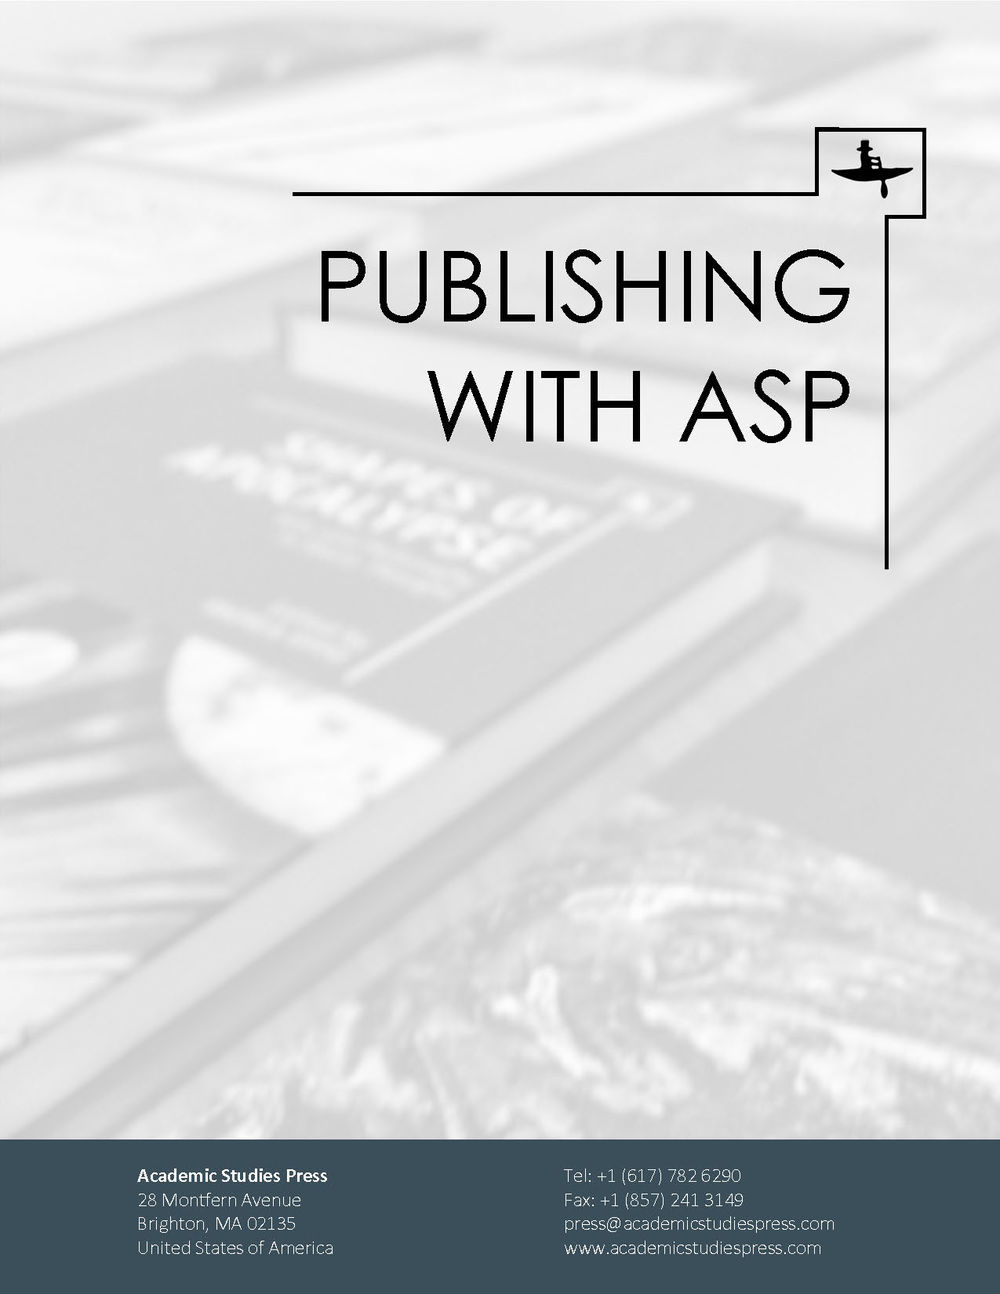 Publishing with ASP